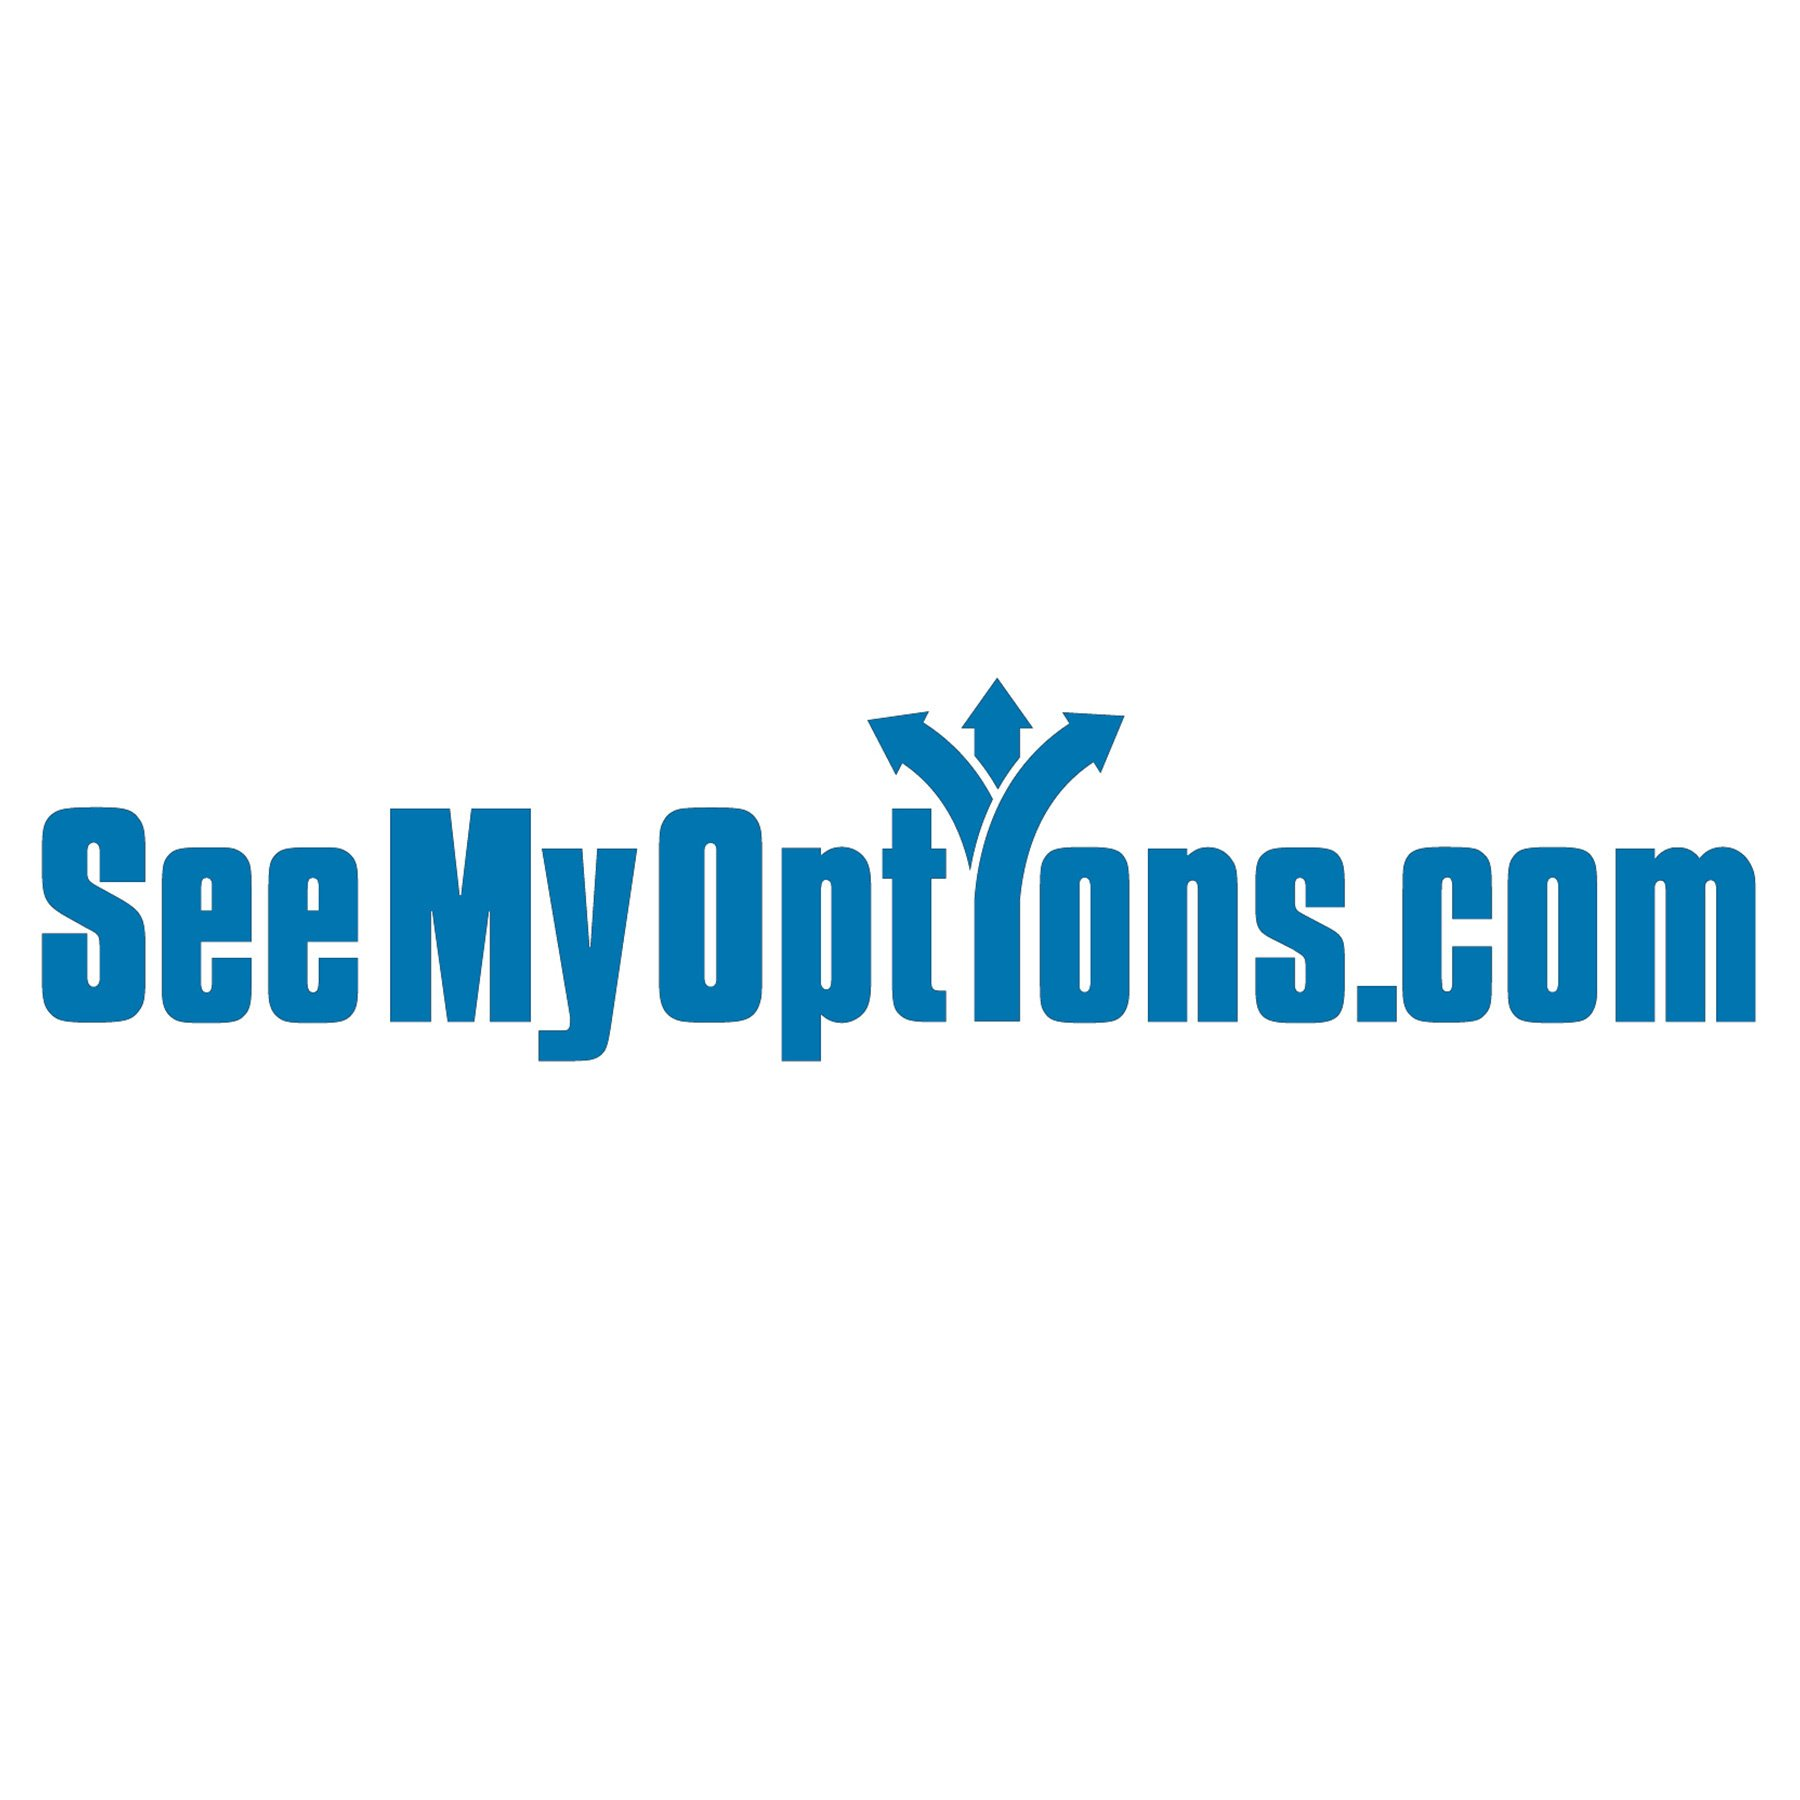 See My Options Affordable Care Act Logo